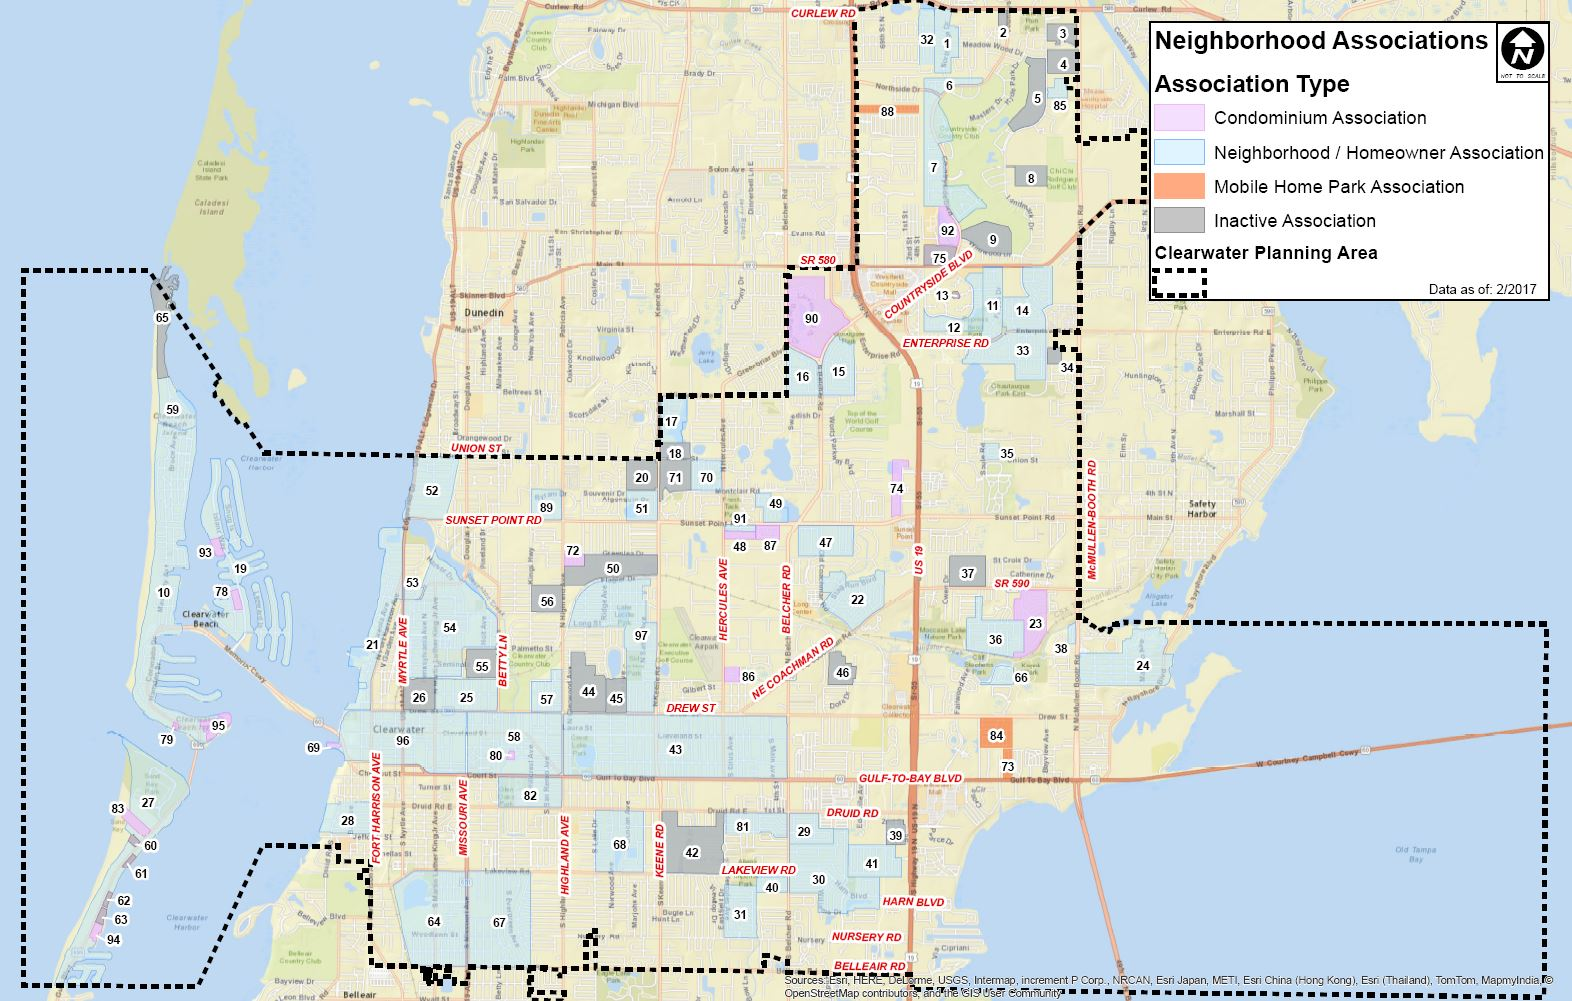 Clearwater Florida Map Clearwater Neighborhood Map | City of Clearwater, FL Clearwater Florida Map